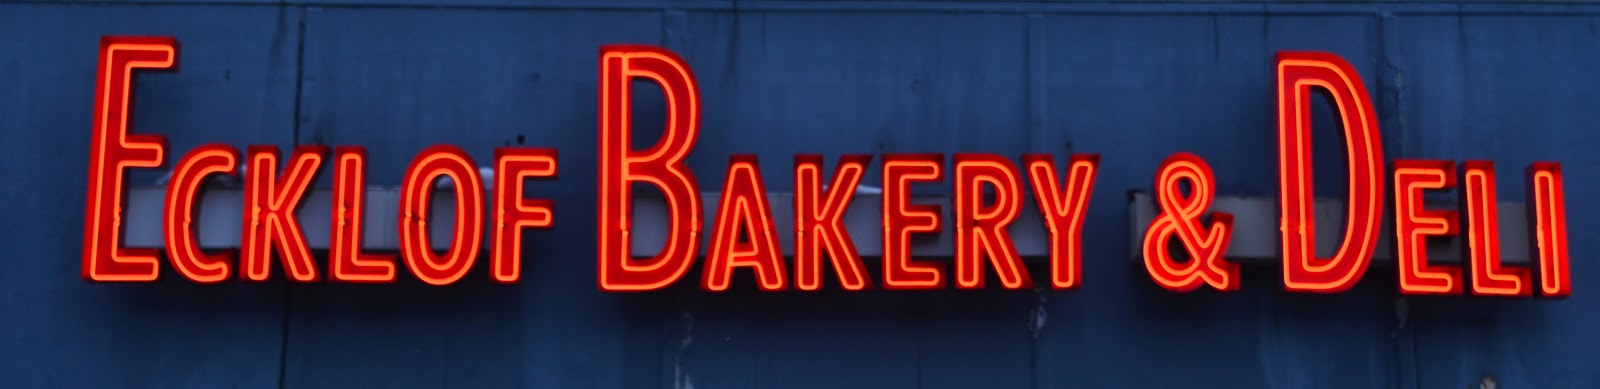 Image result for ecklofs bakery logo